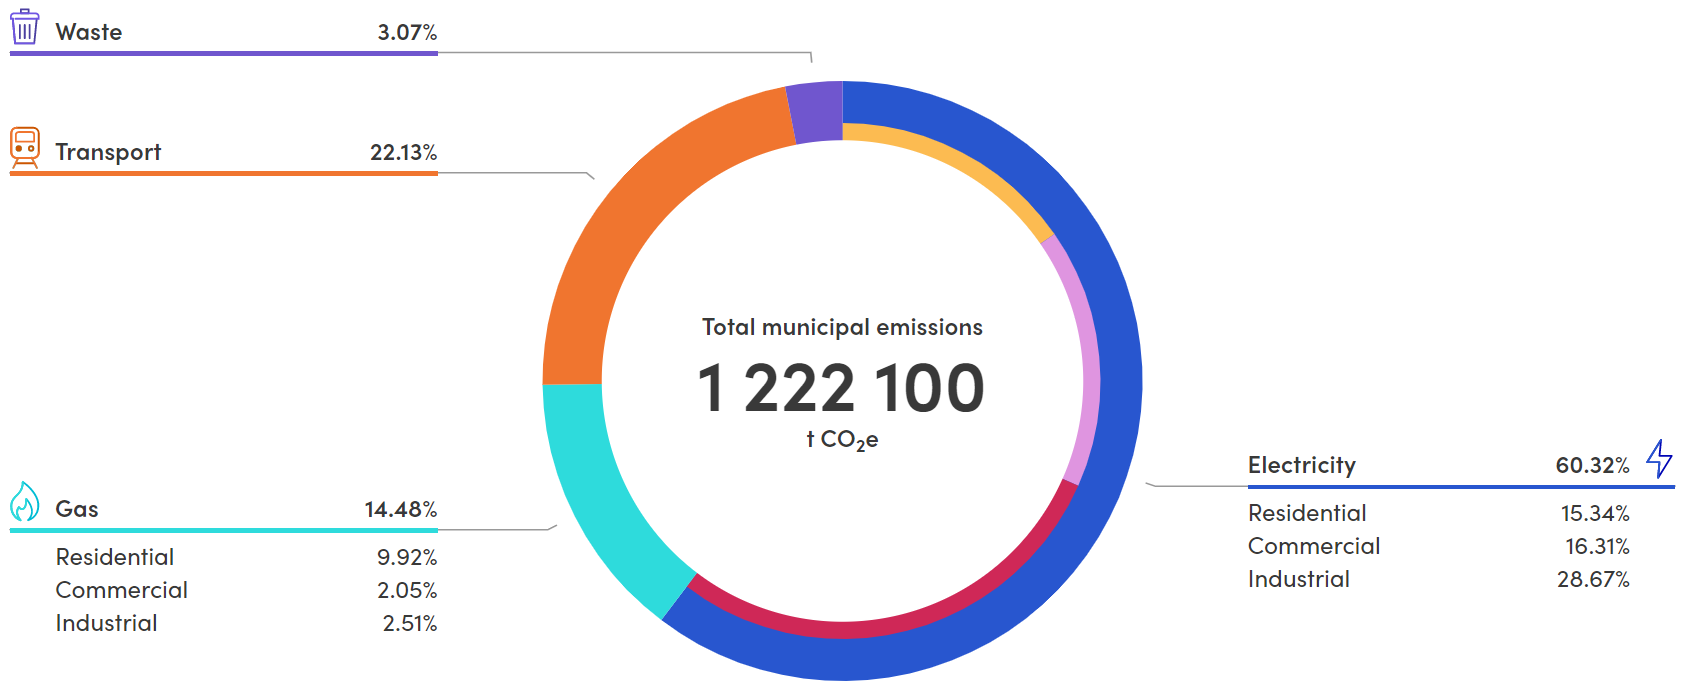 Total municipal emissions 1,222,100 tonnes of carbon emissions, made up of 3.07% Waste; 22.13% Transport; 14.48% Gas (residential gas 9.92%, commercial gas 2.05%, industrial gas 2.51%); 60.32% Electricity (residential electricity 15.34%, commercial electr